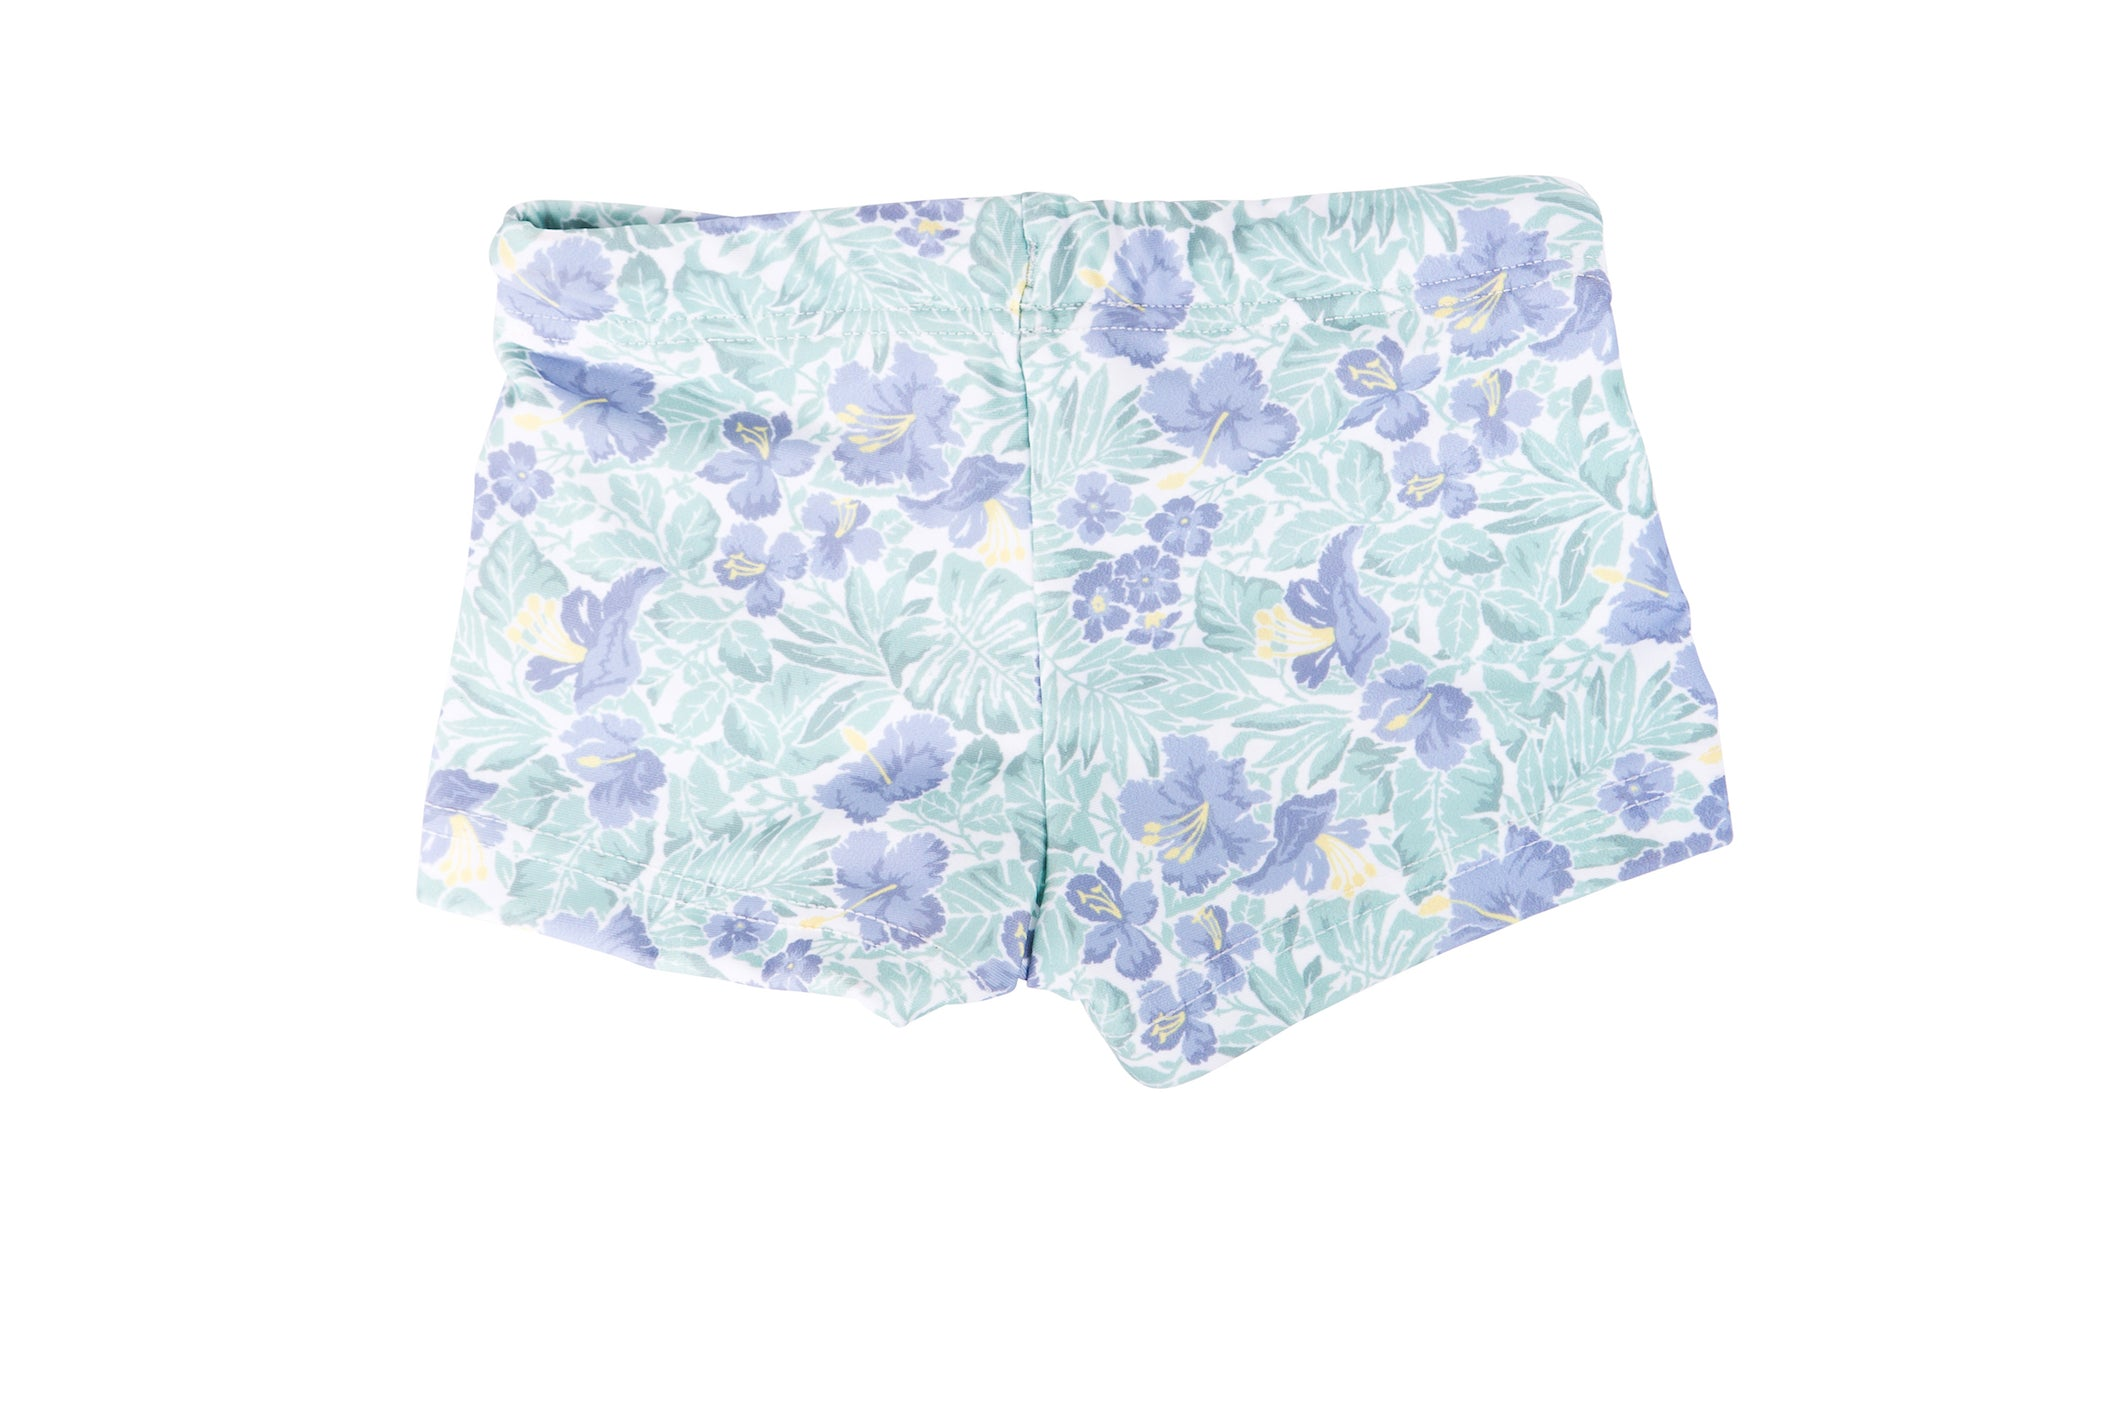 (sale) freshwater floral budgie brief - size 2 & 3 sold out